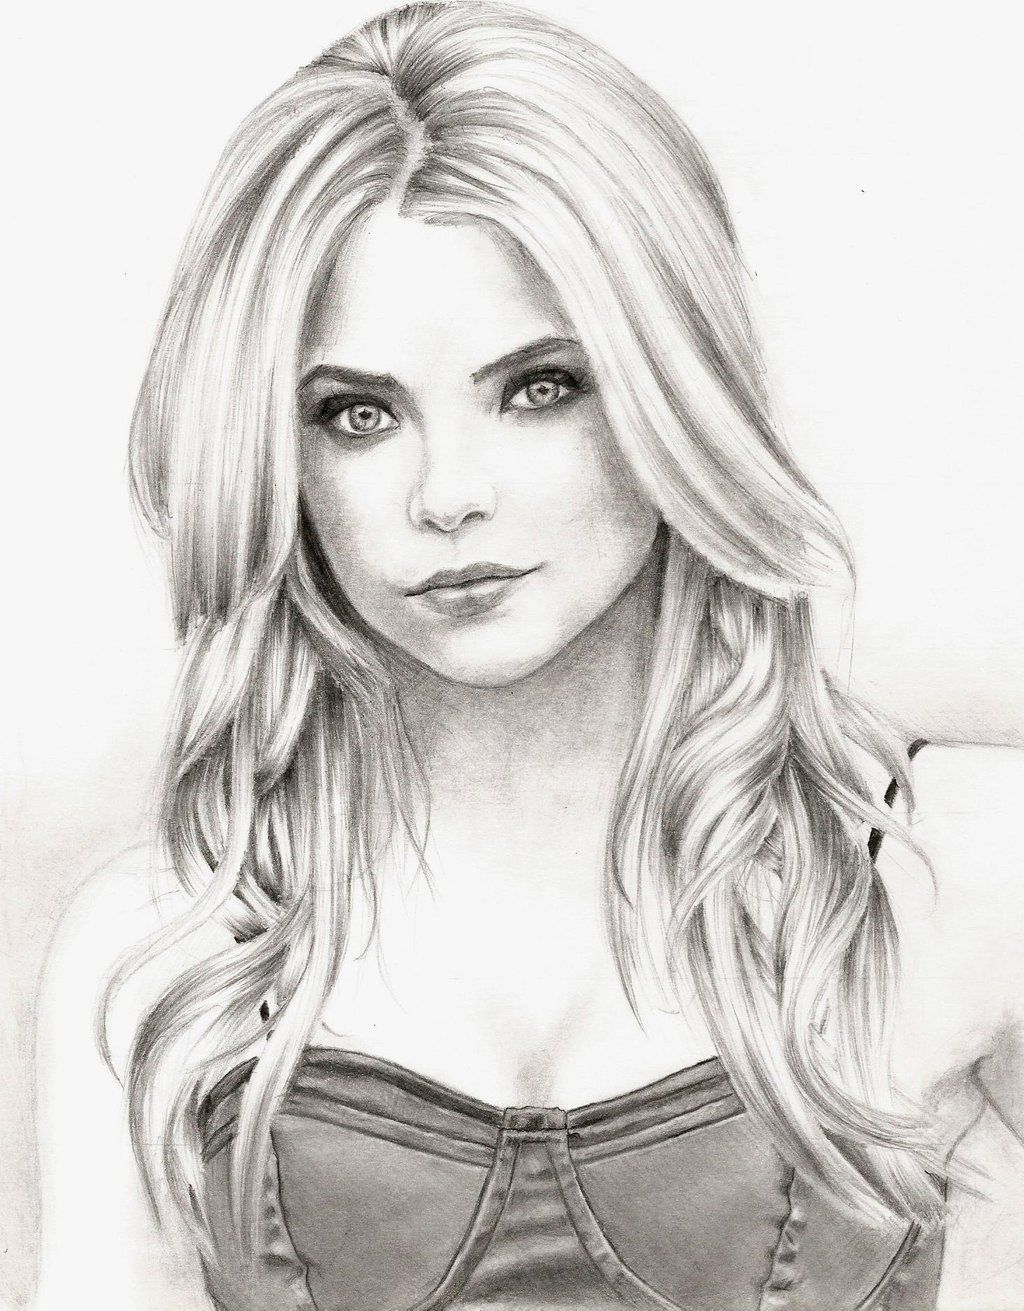 pll hanna drawings - Αναζήτηση Google | Art | Pinterest | Dibujo ...